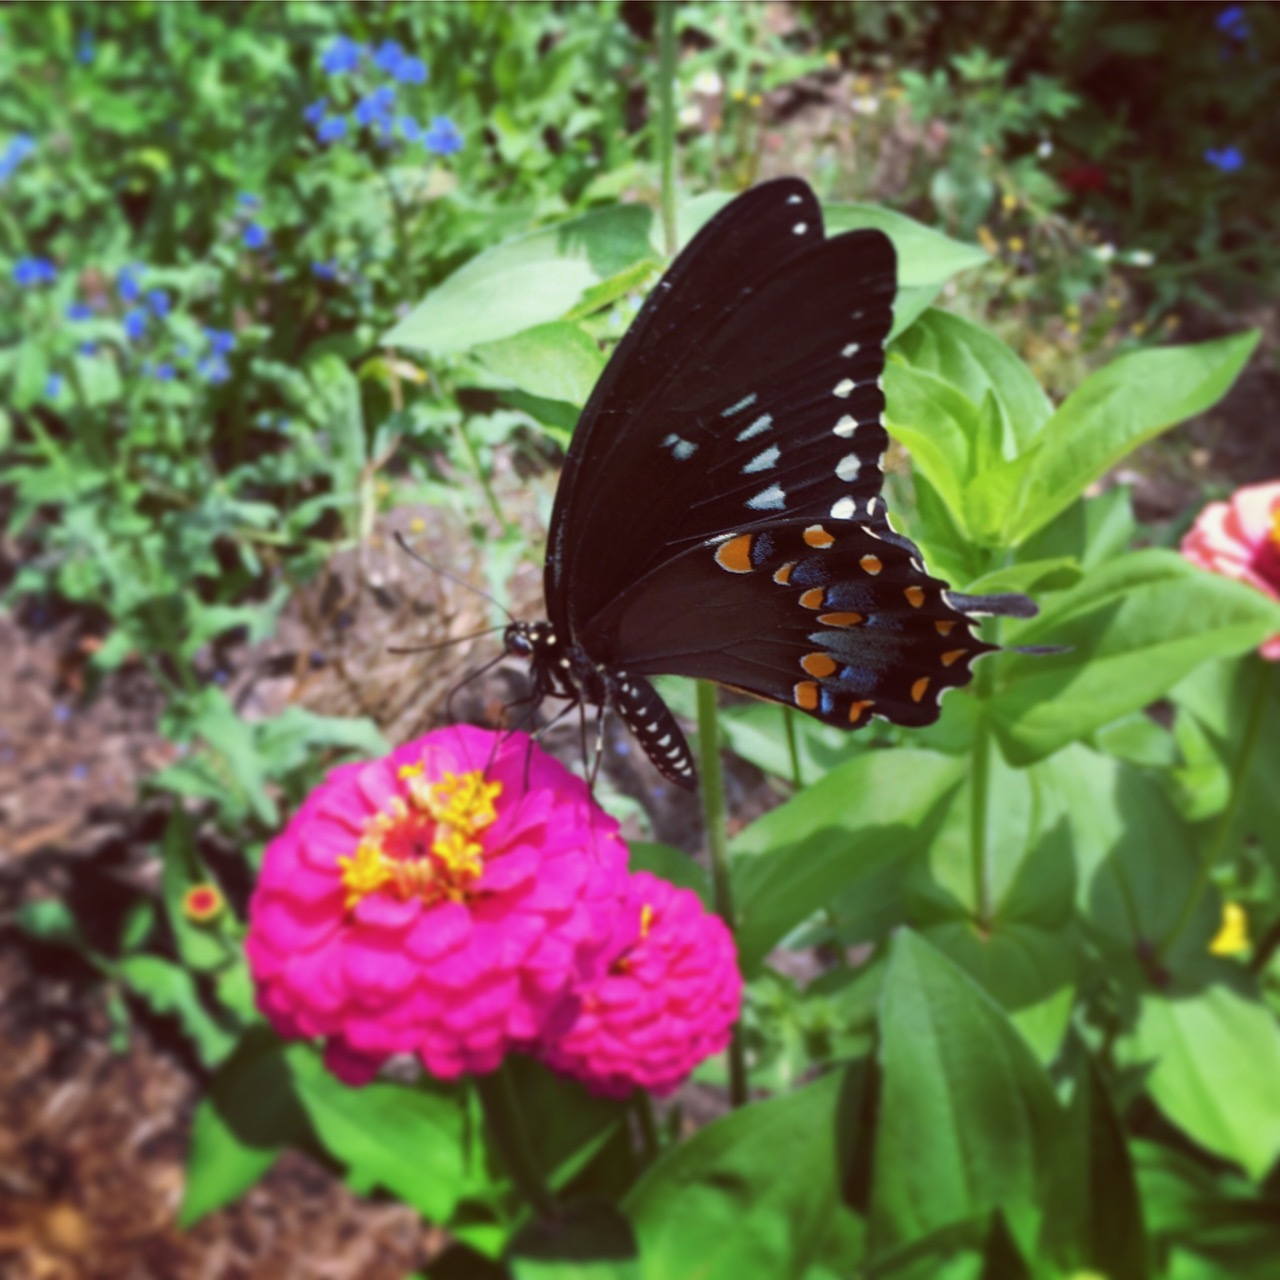 July 19 eastern black swallowtail